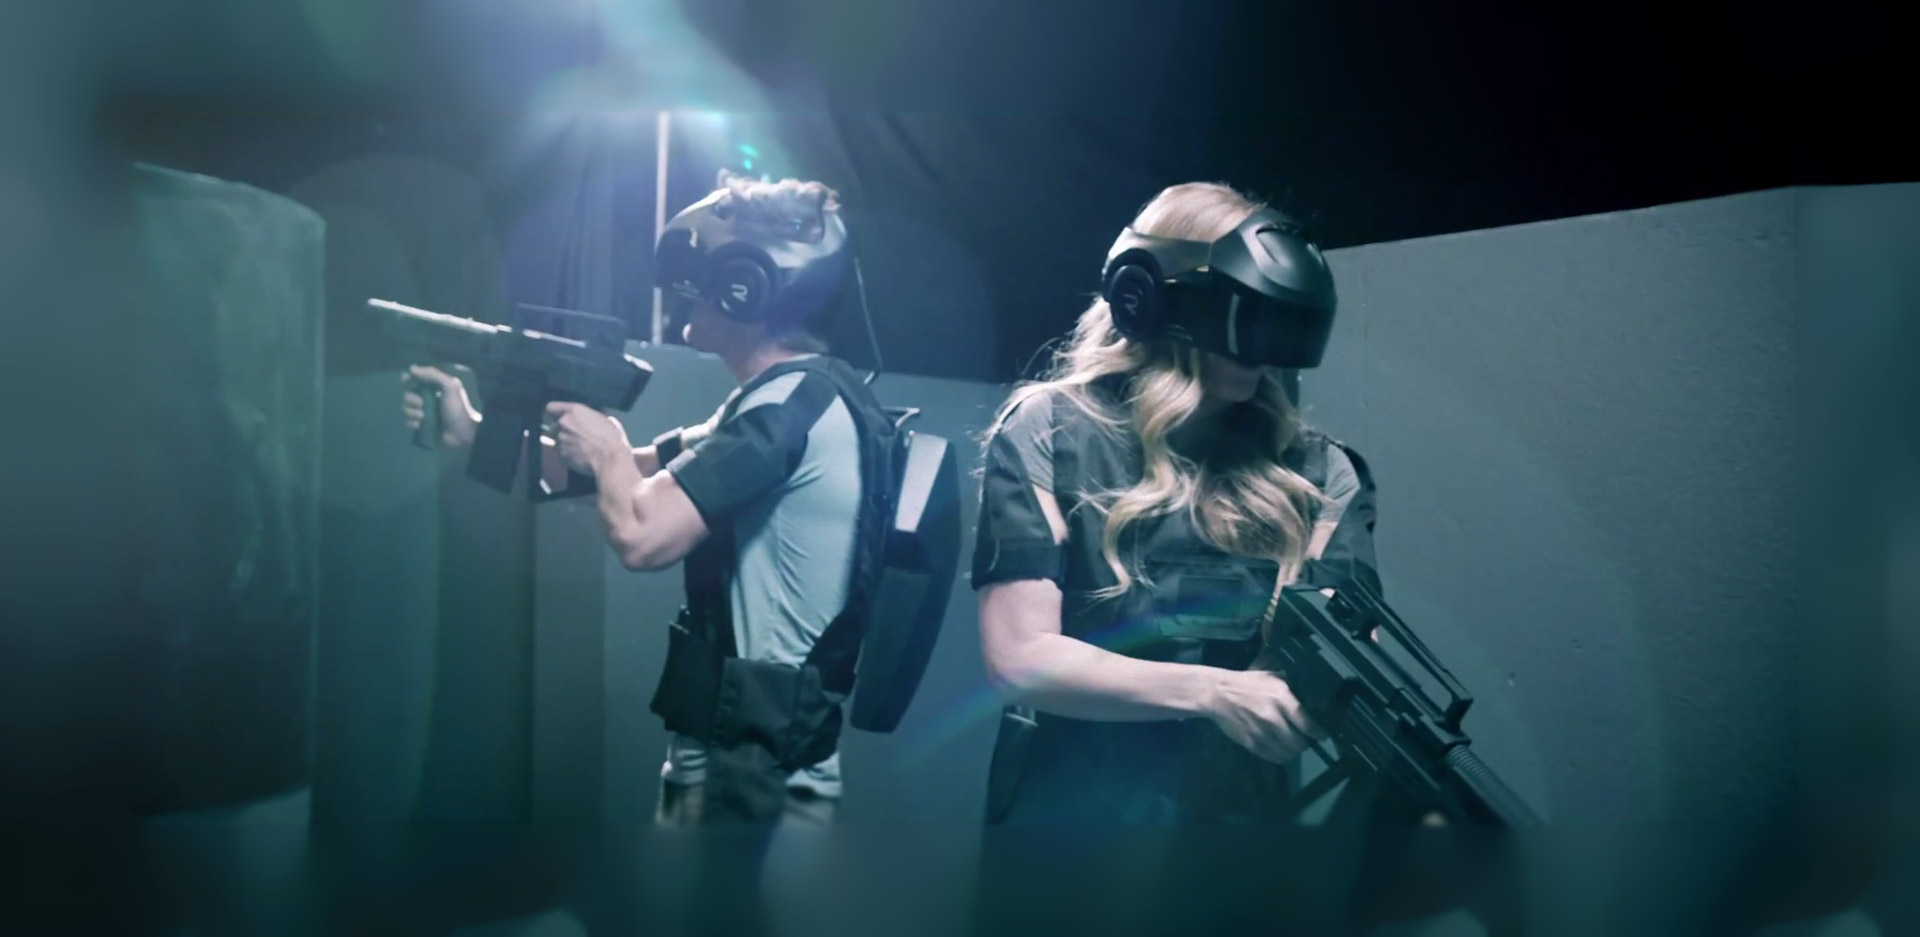 The Void Wants To Build 230 Vr Theme Parks Worldwide In